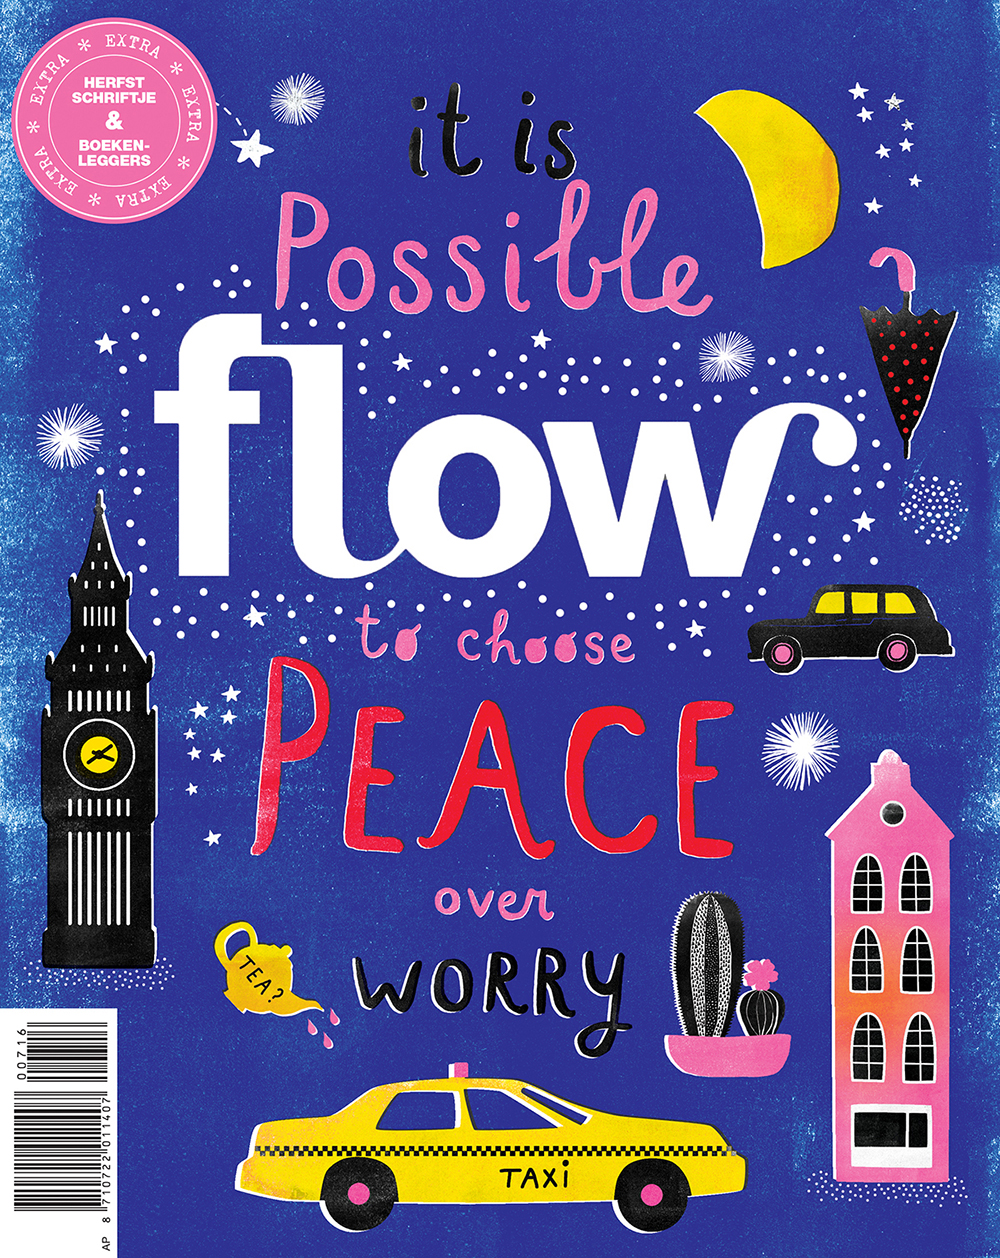 Flow Magazine Christmas Cover by Marenthe.jpg